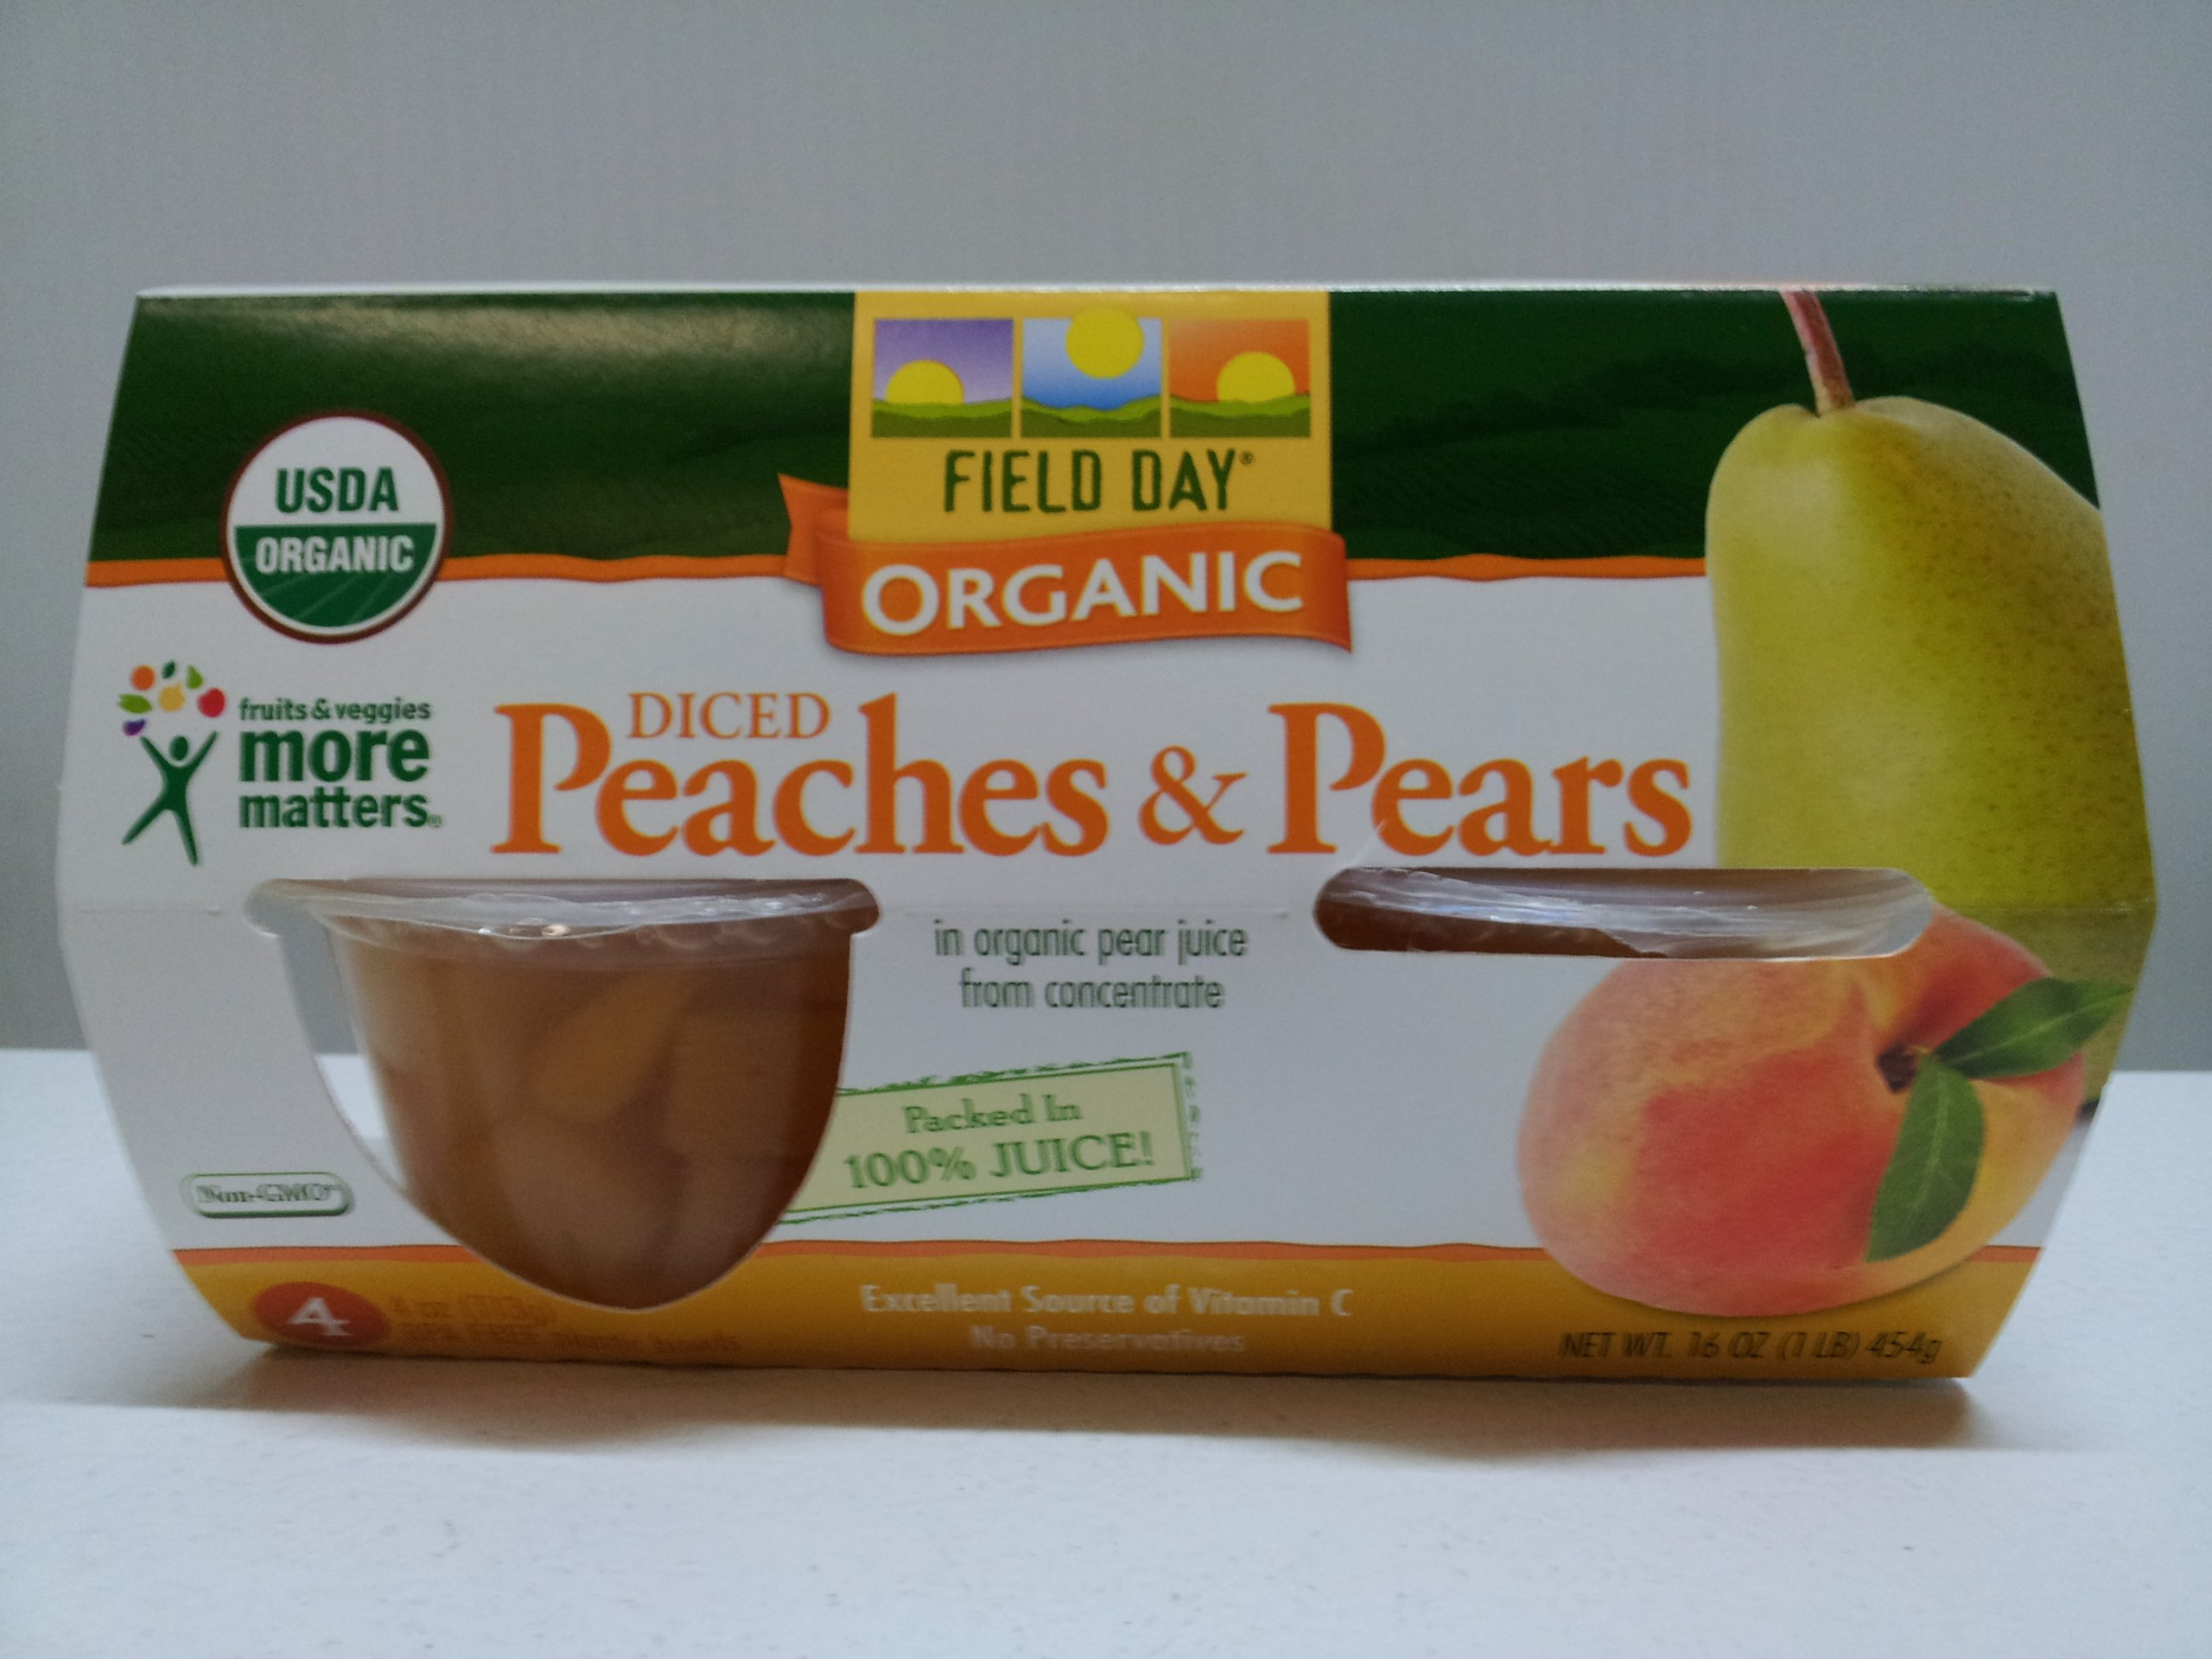 Field Day Organic Diced Peaches and Pear, 4 Ounce - 4 per pack - 6 packs per case.